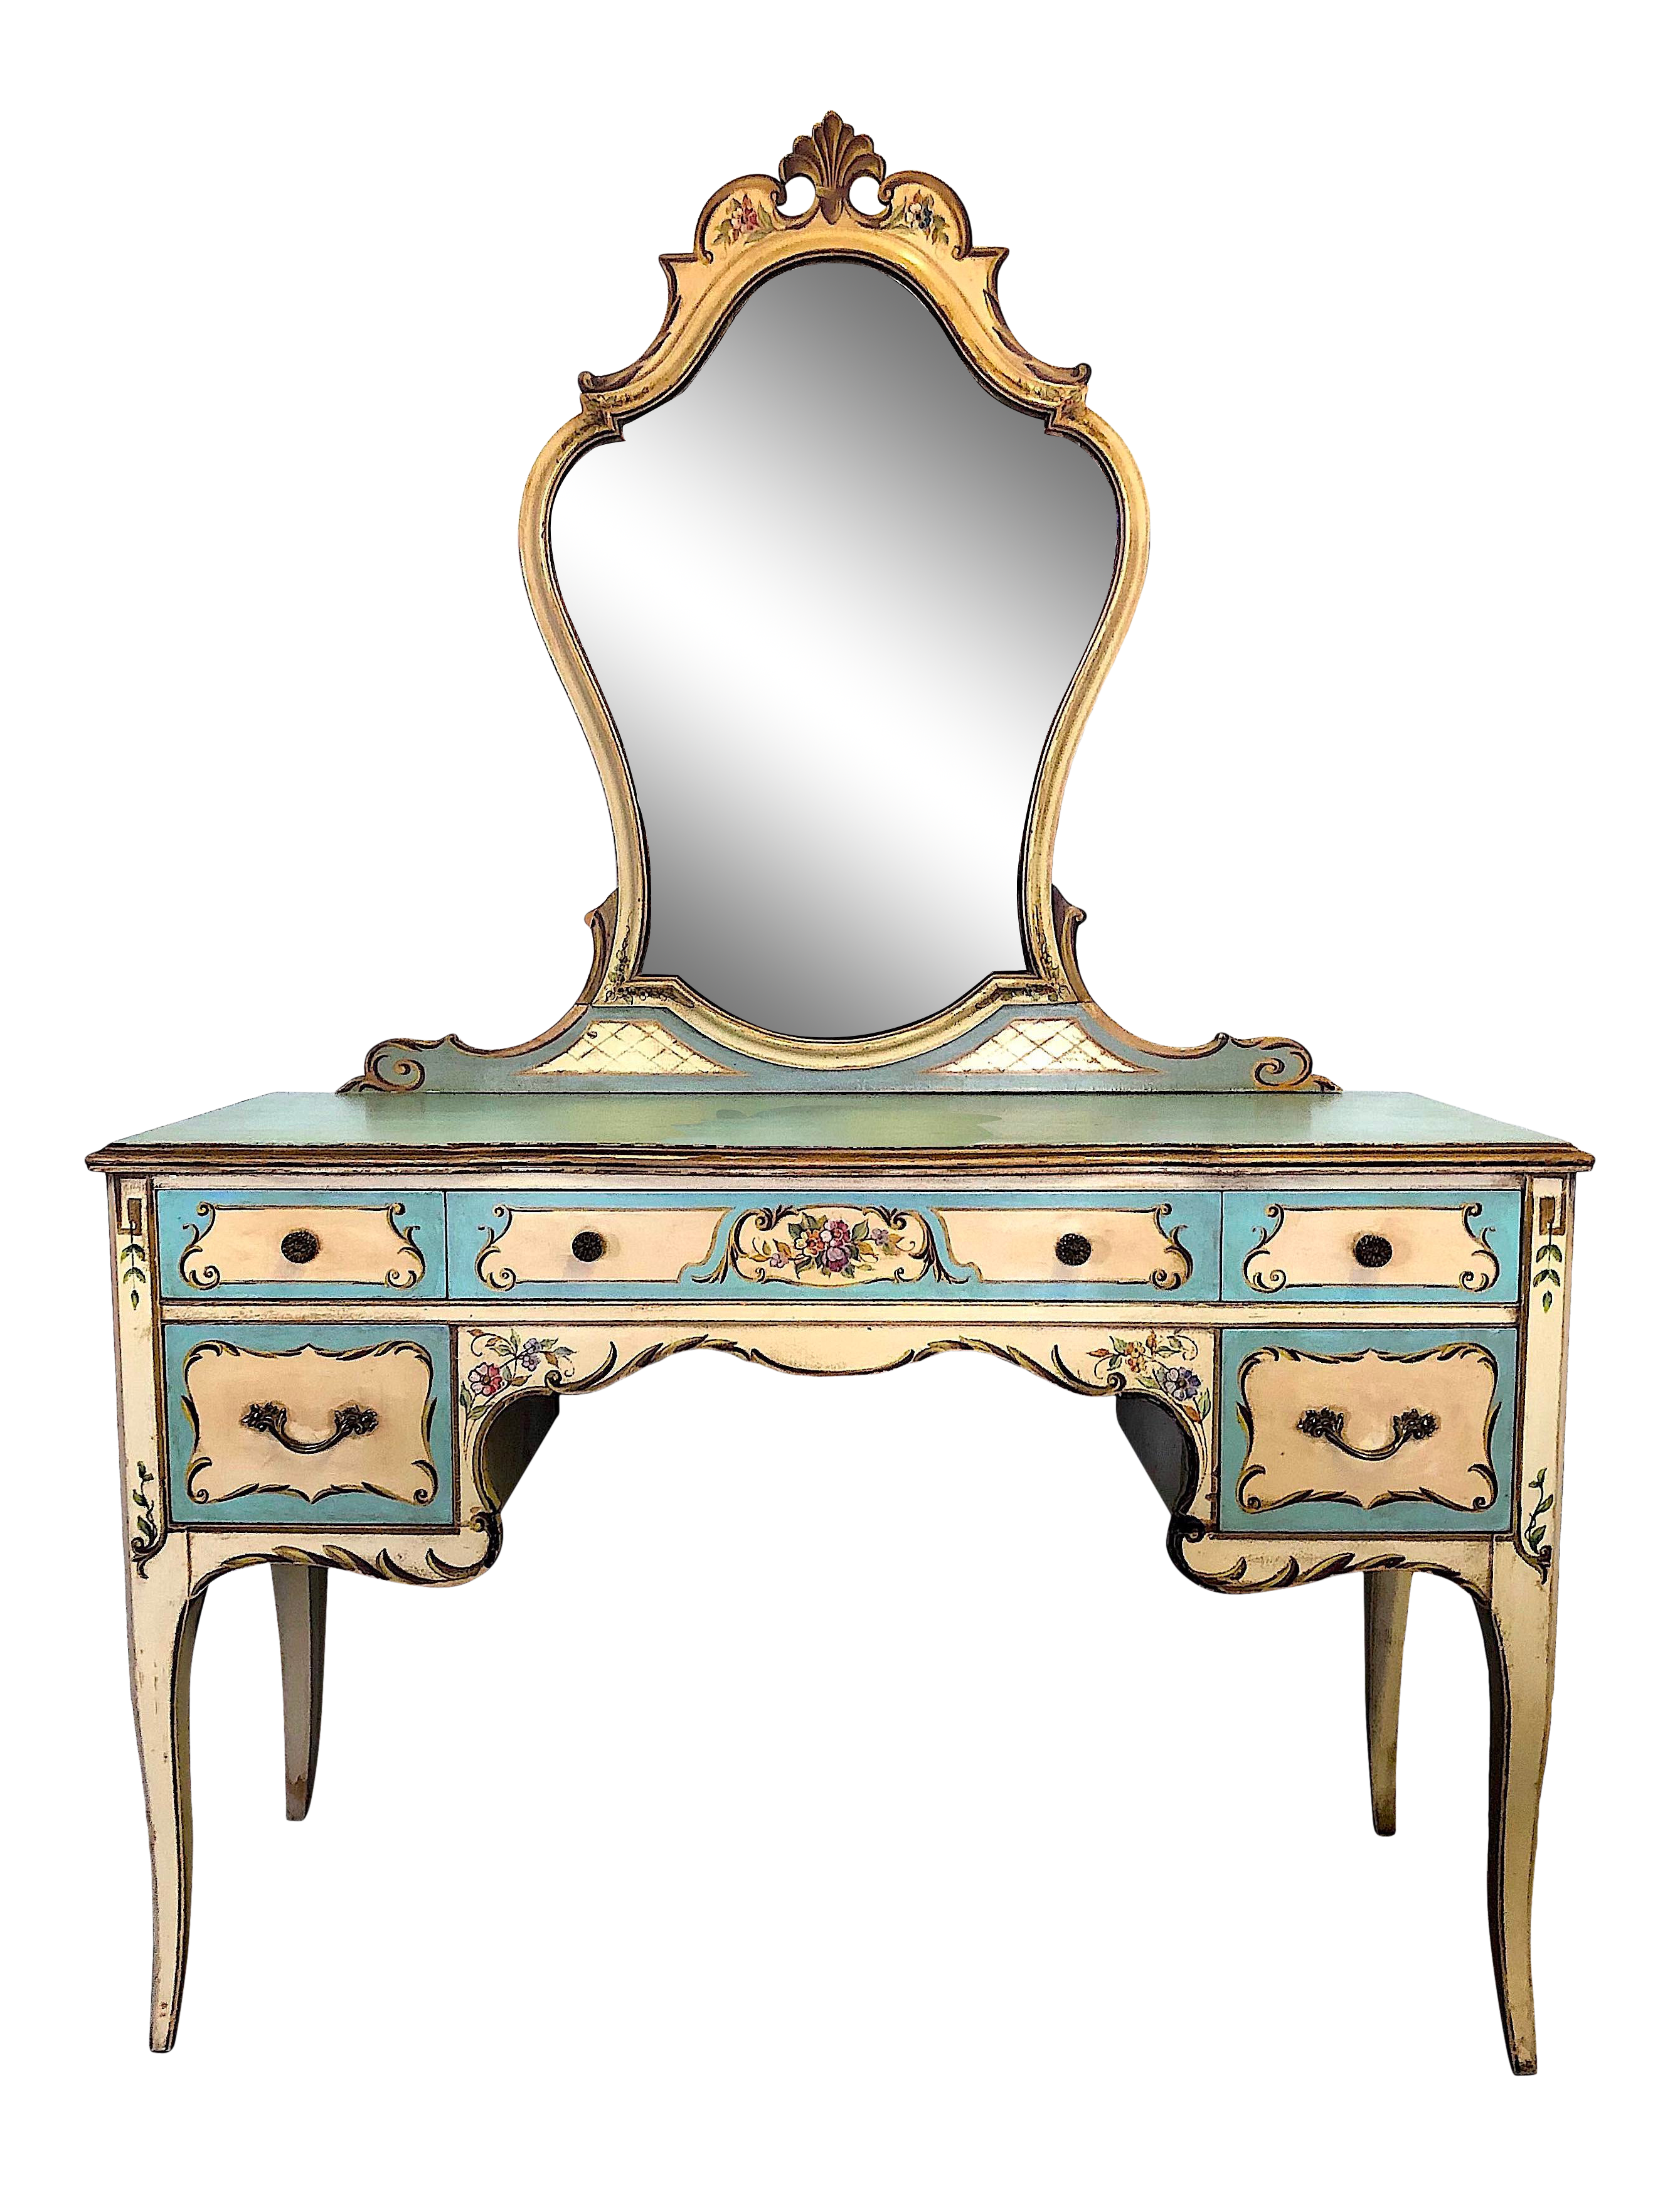 Mirrored Console Dressing Table Desk 6 Drawer Vintage Venetian Glass Furniture